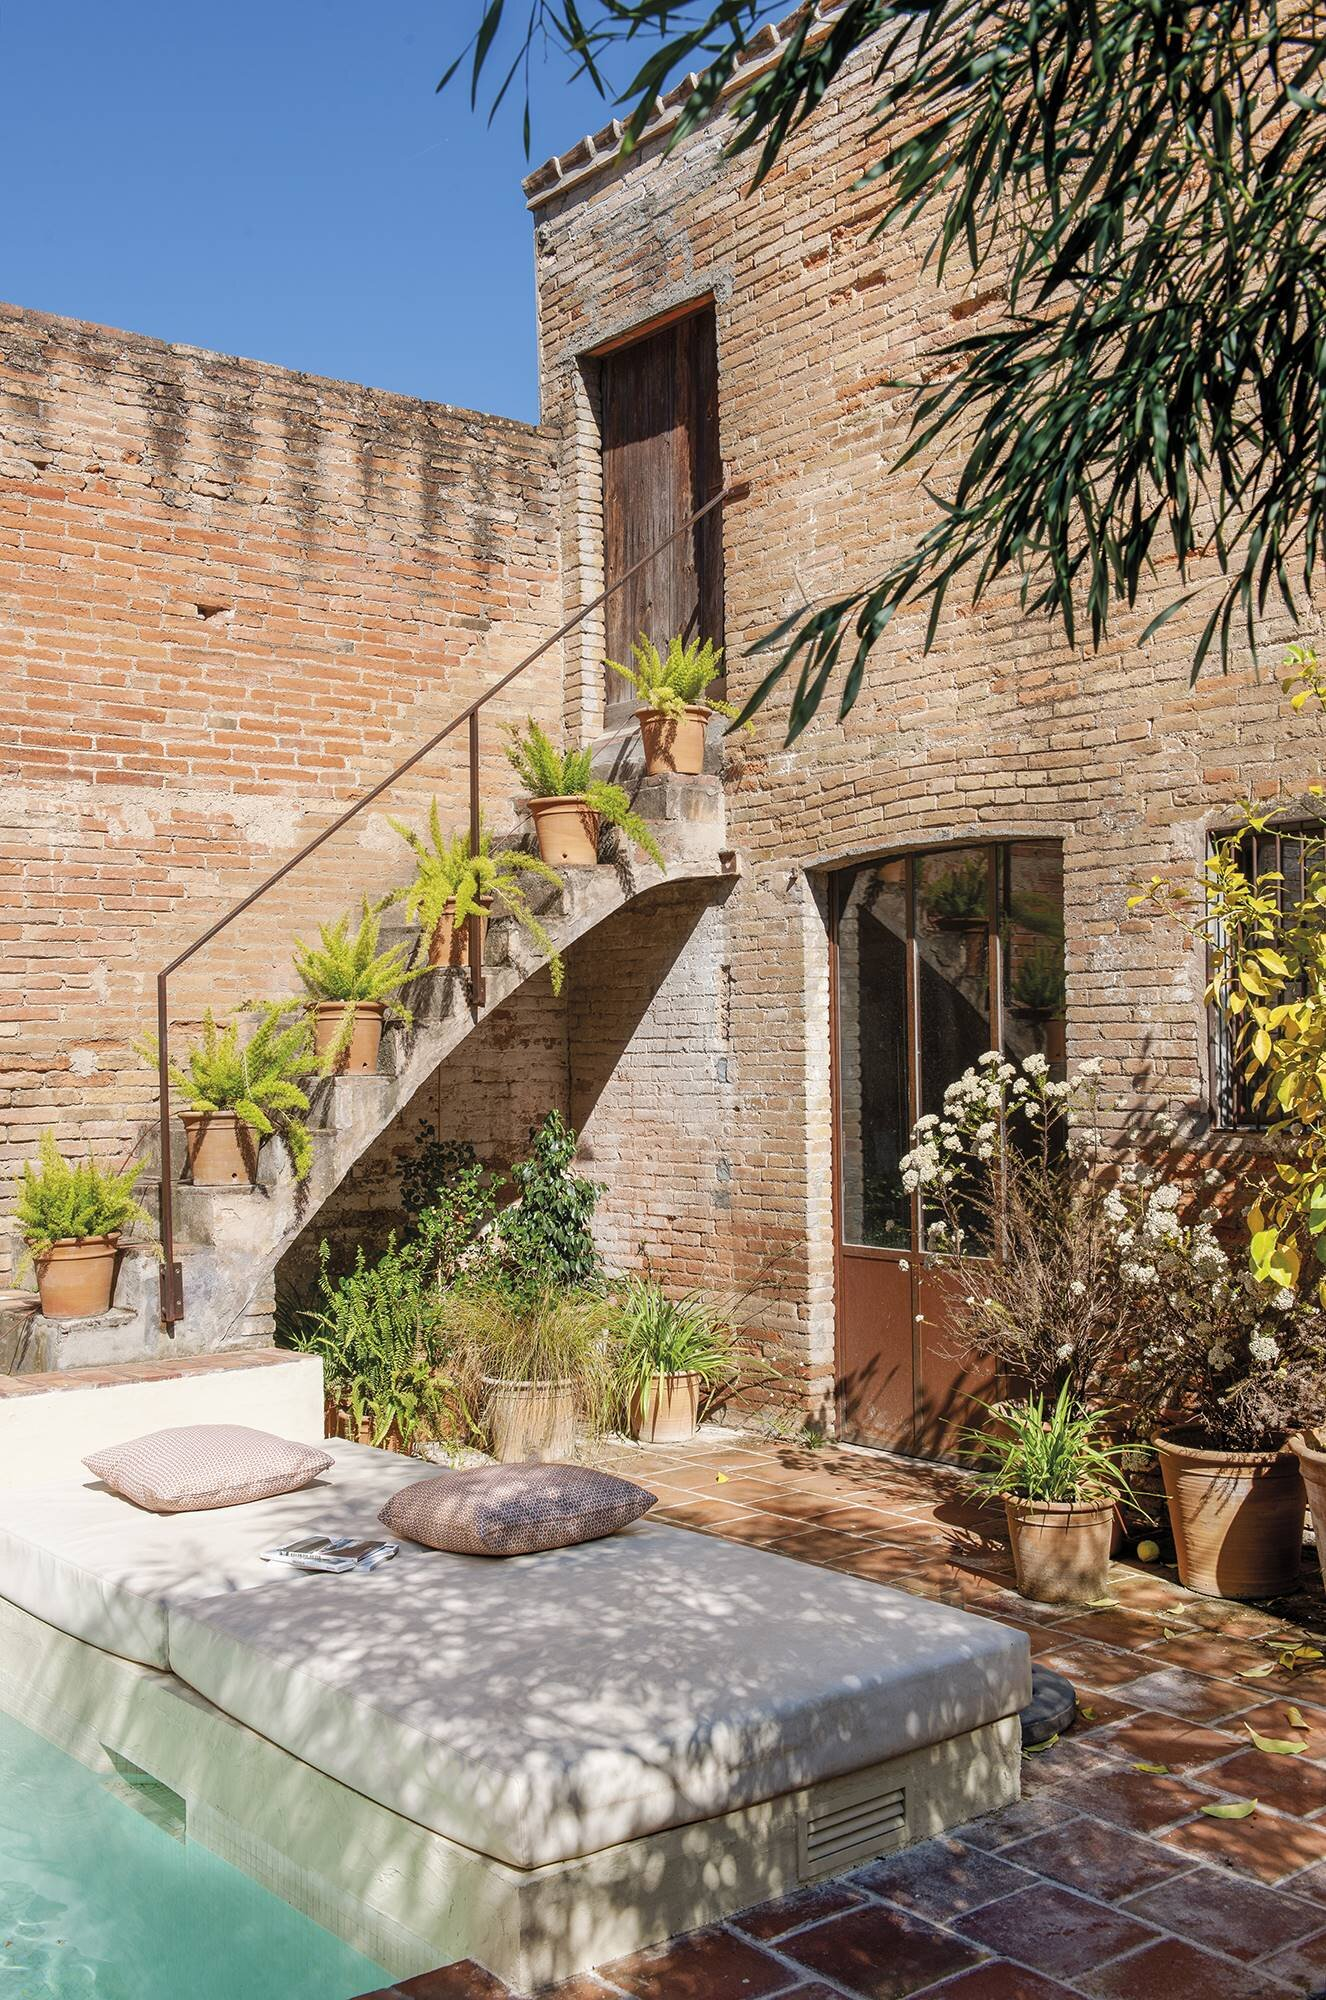 Natural Country Style In A 19th Century Townhouse In Barcelona The Nordroom